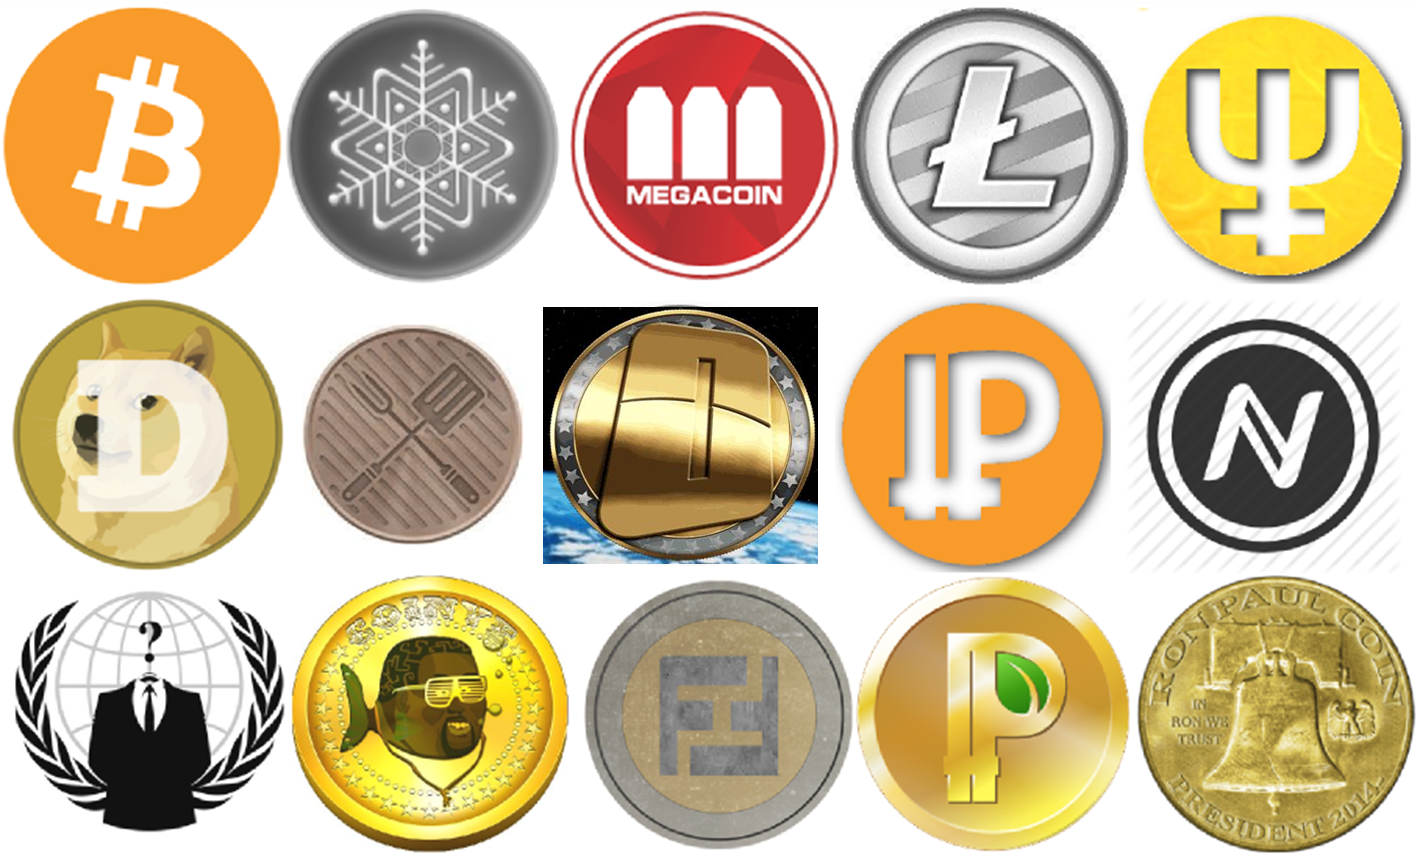 The legality of virtual currency Onecoin